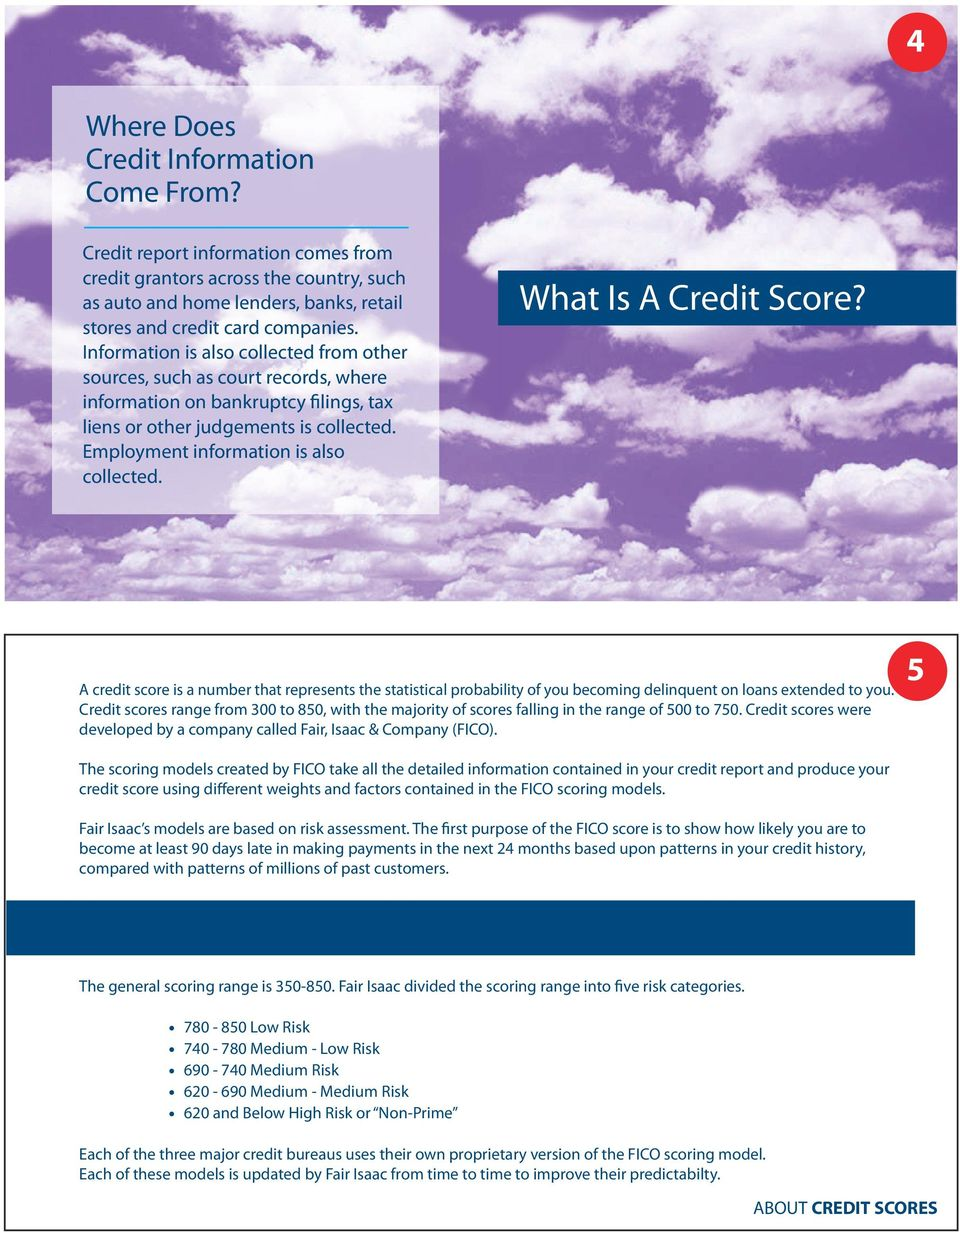 What Is A Credit Score? A credit score is a number that represents the statistical probability of you becoming delinquent on loans extended to you.